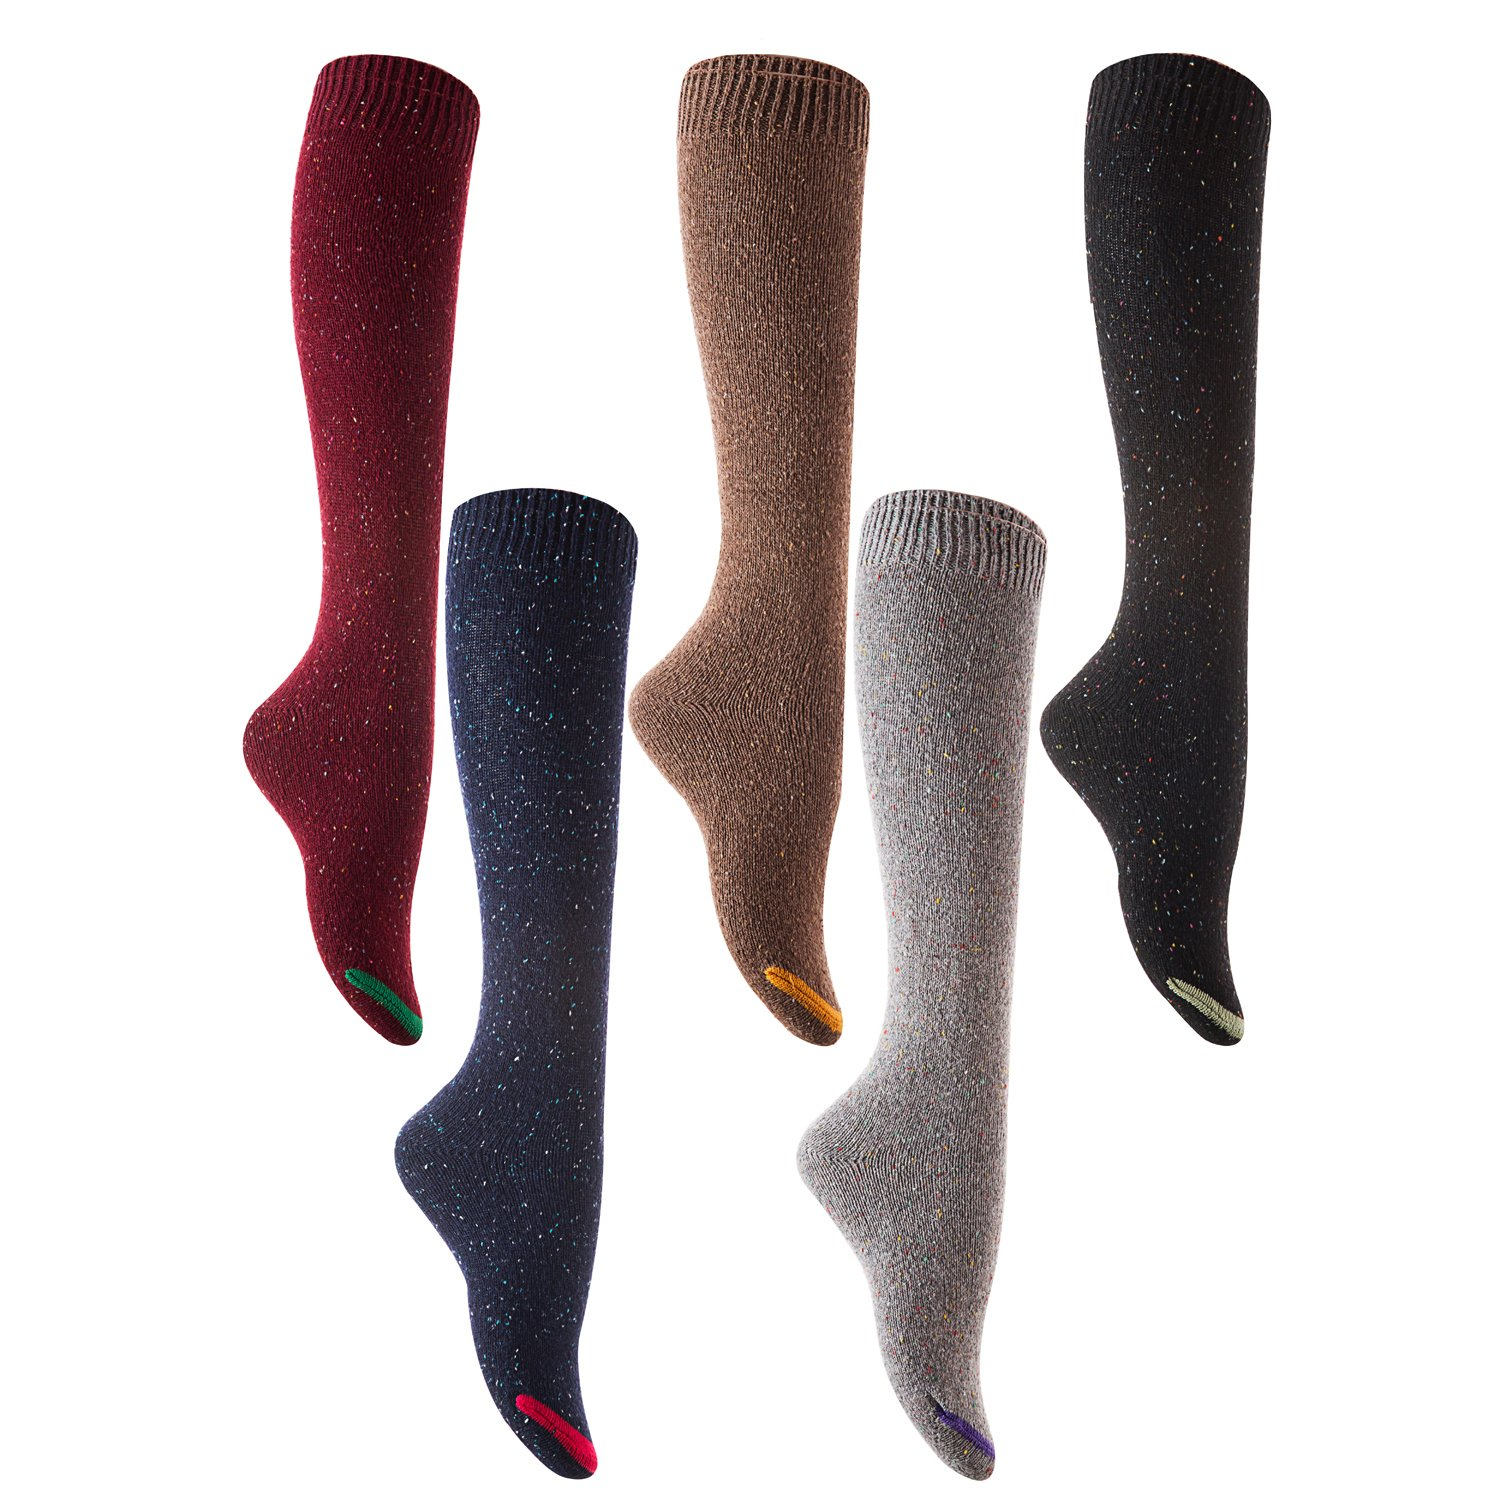 Random Color Lian LifeStyle Womens 5 Pairs Pack Knee High Cotton Boot Socks Size 6-9